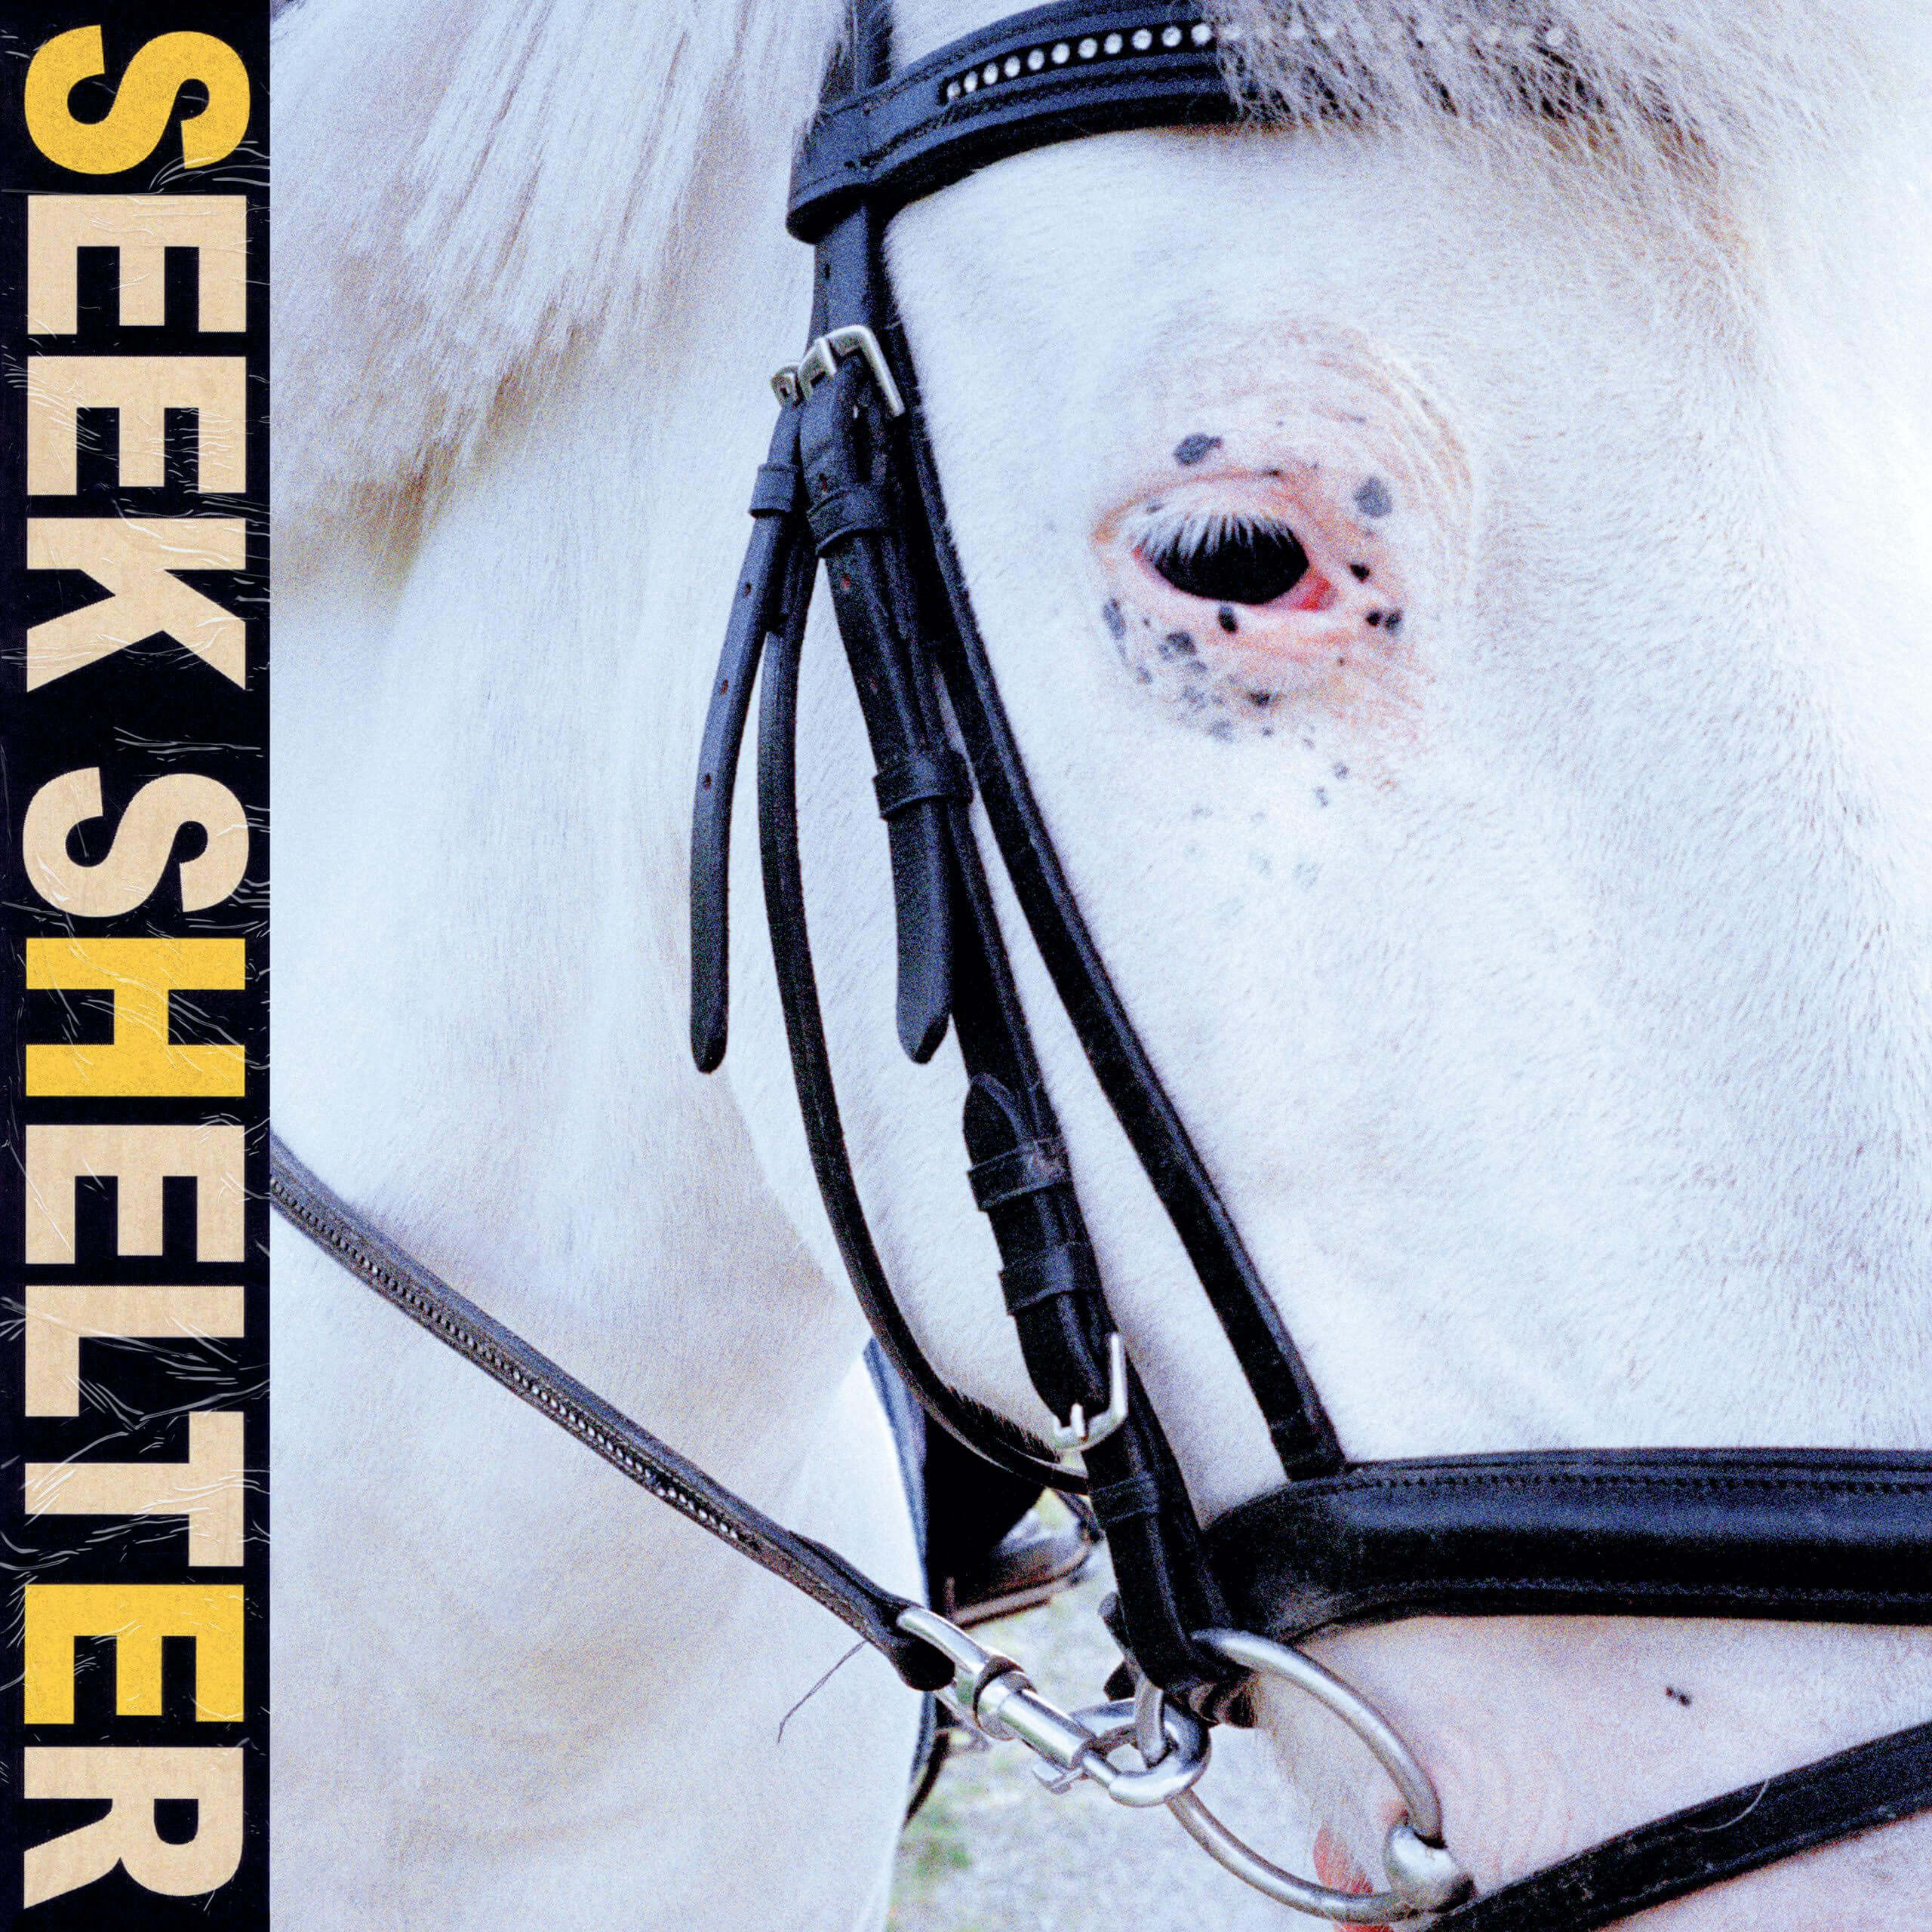 Seek Shelter by Iceage album review by Jahmeel Russell for Northern Transmissions